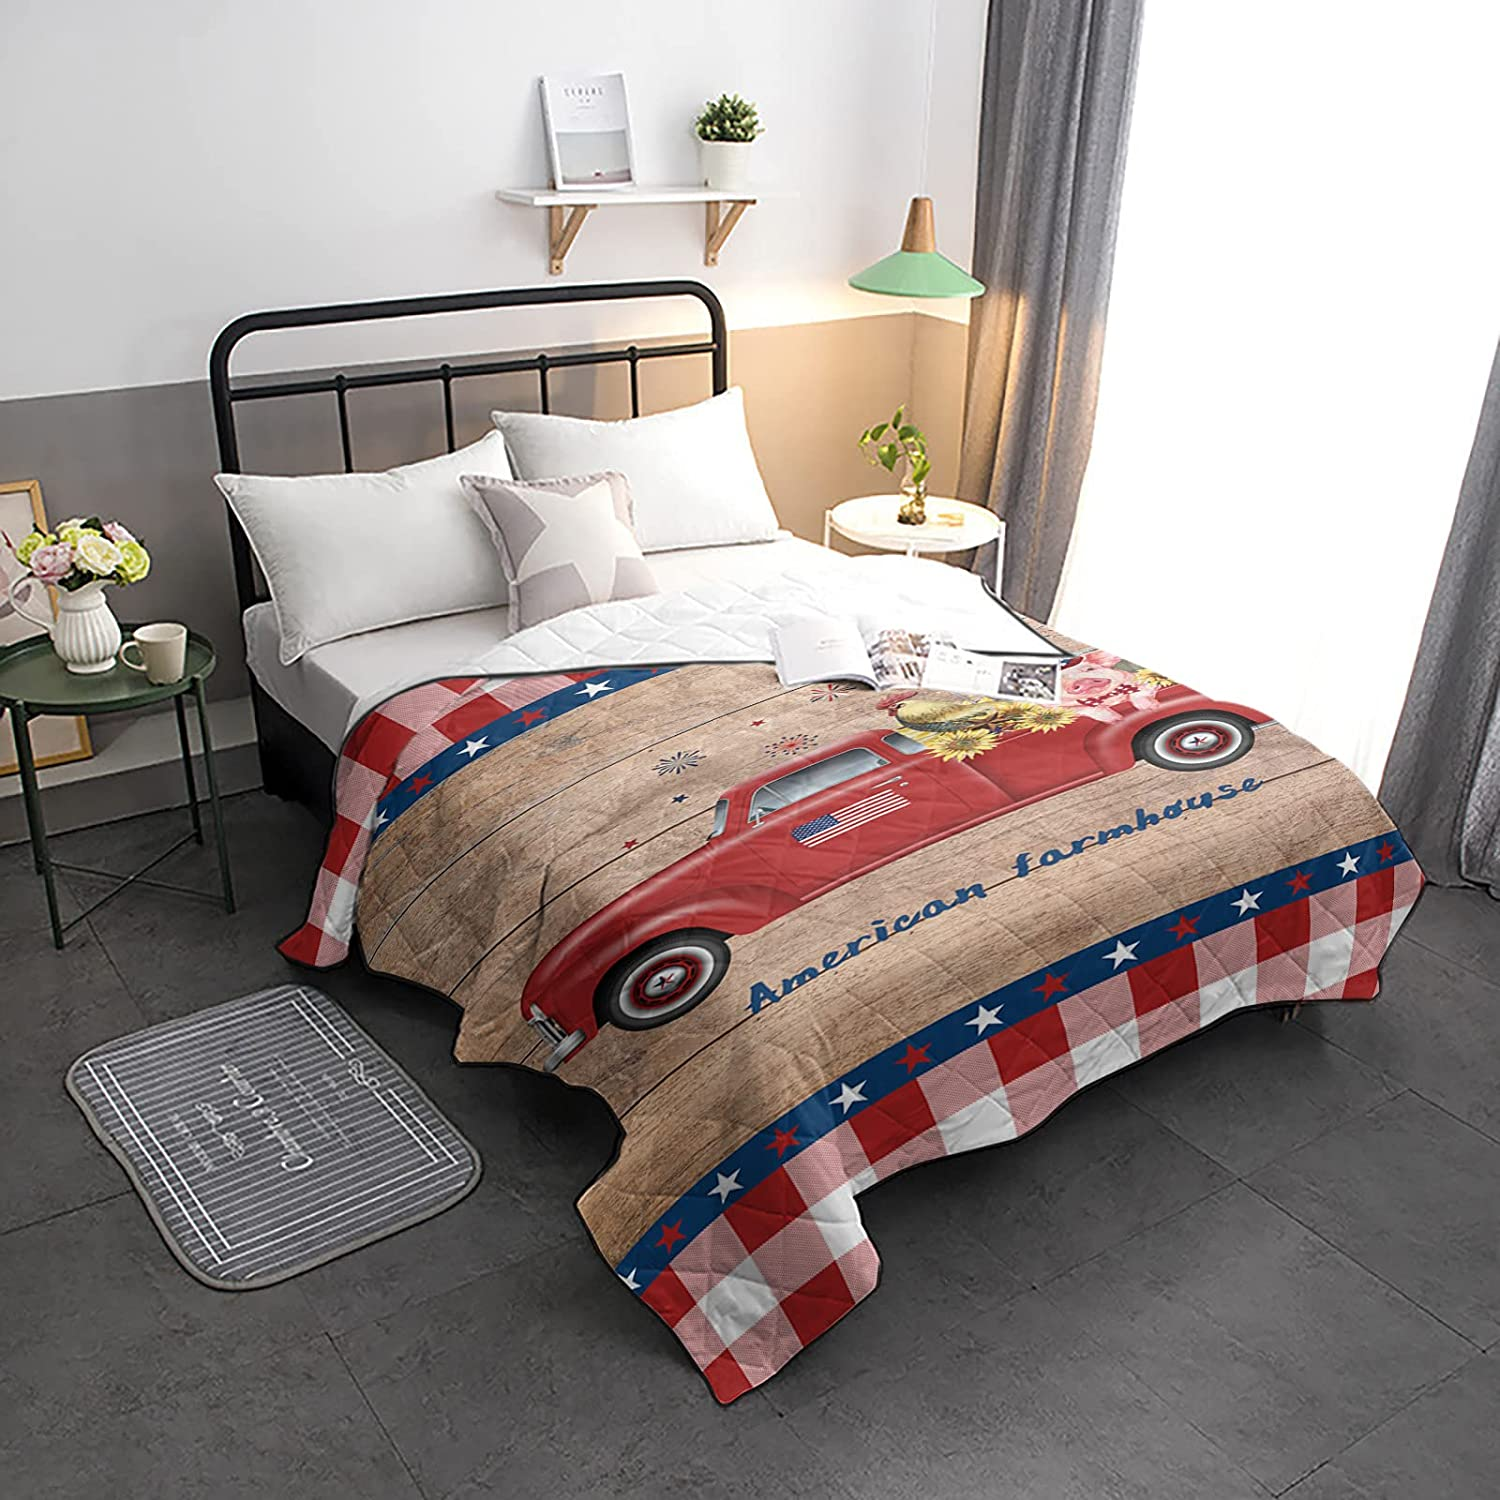 Down Alternative Comforter Popular product Max 75% OFF Farmhouse Red Truck Rooster with Cow